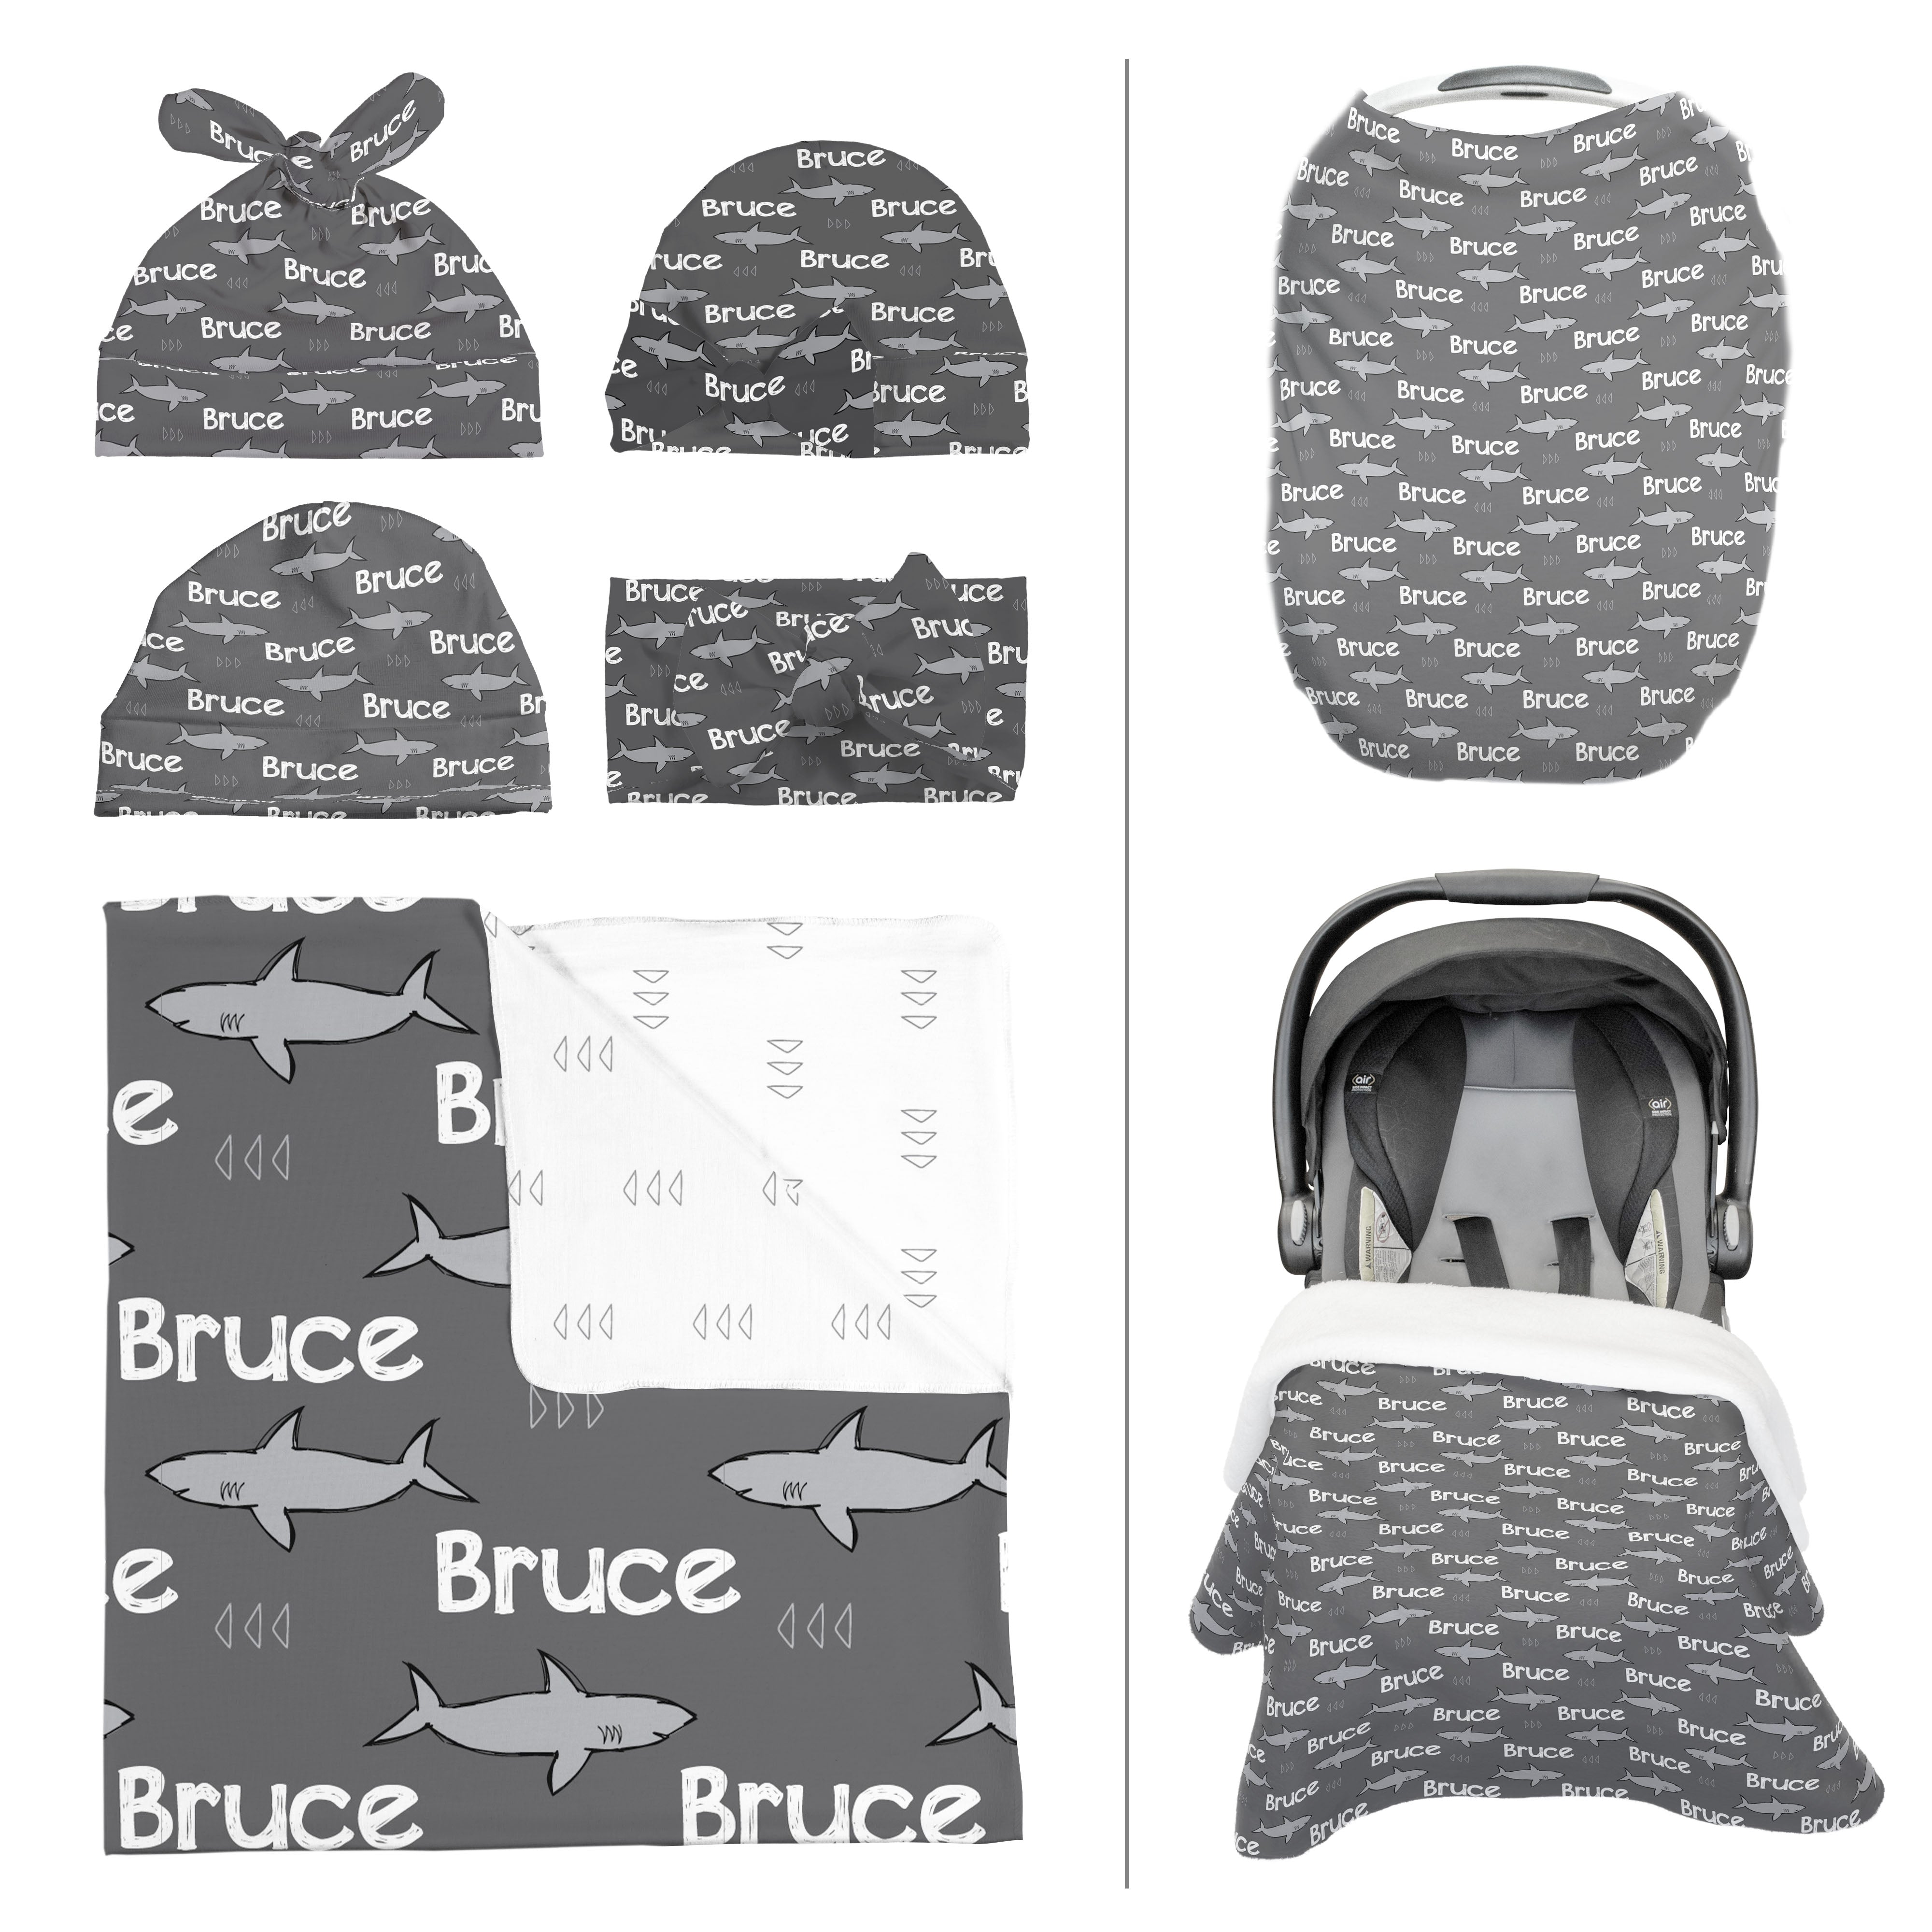 Bruce's Noble Shark | Take Me Home Bundle